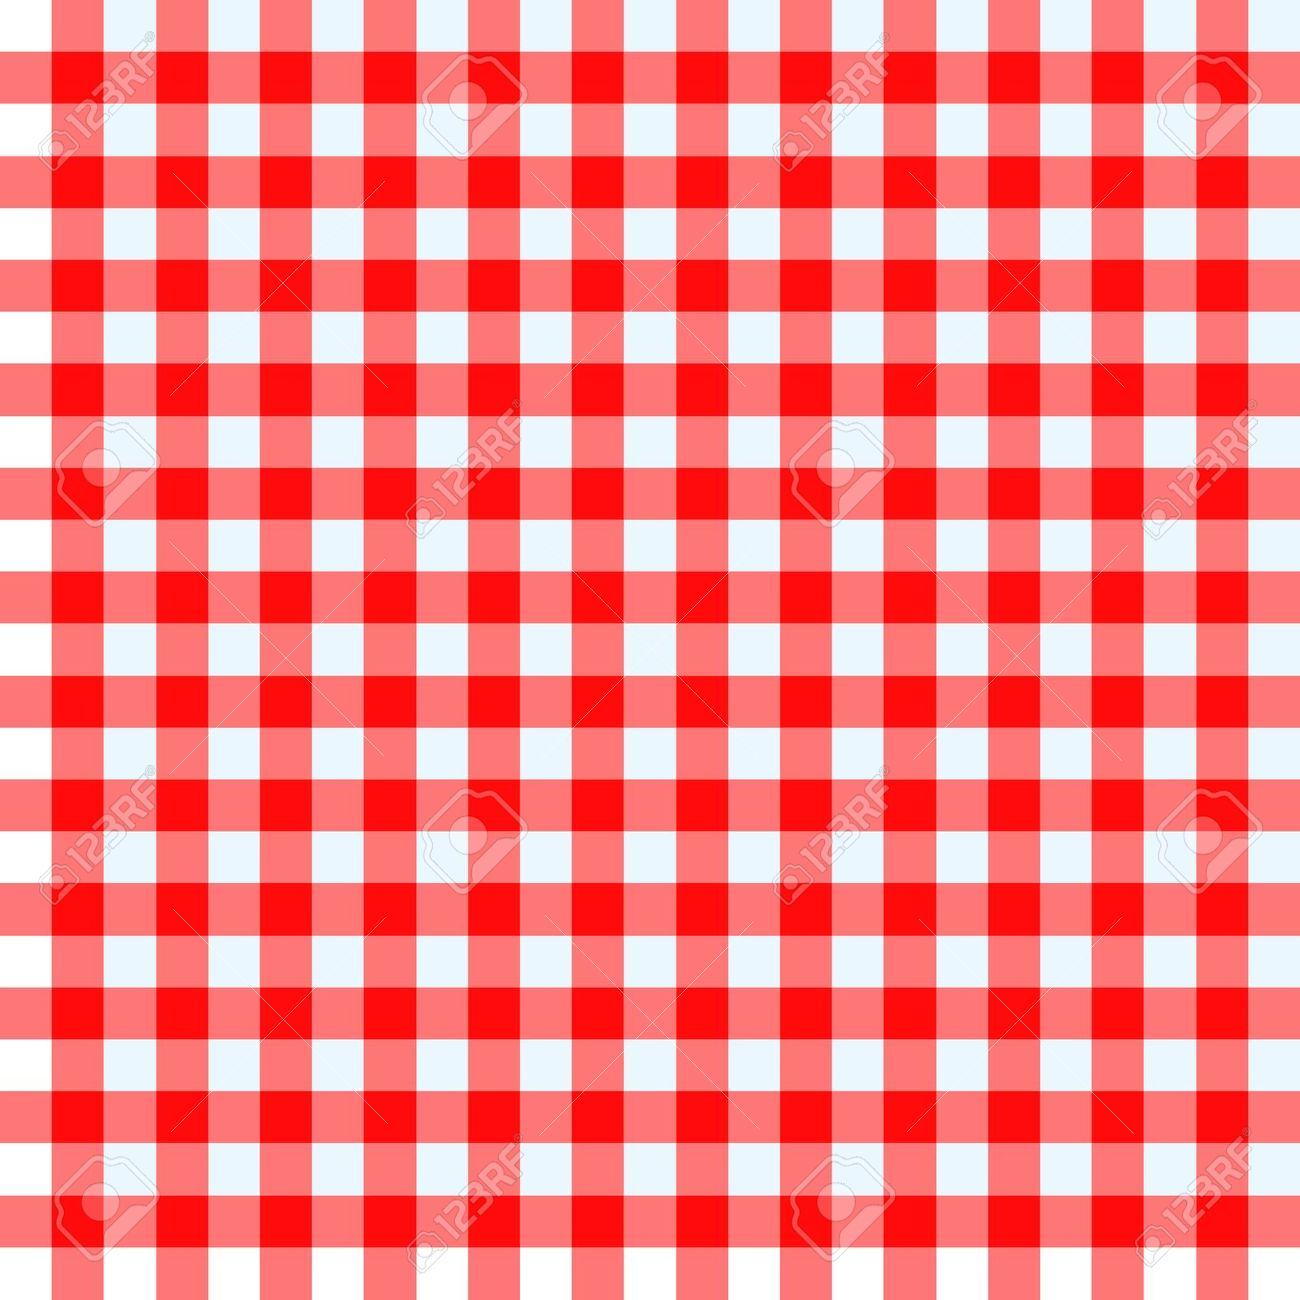 Red And White Checked Tablecloth Royalty Free Cliparts, Vectors.